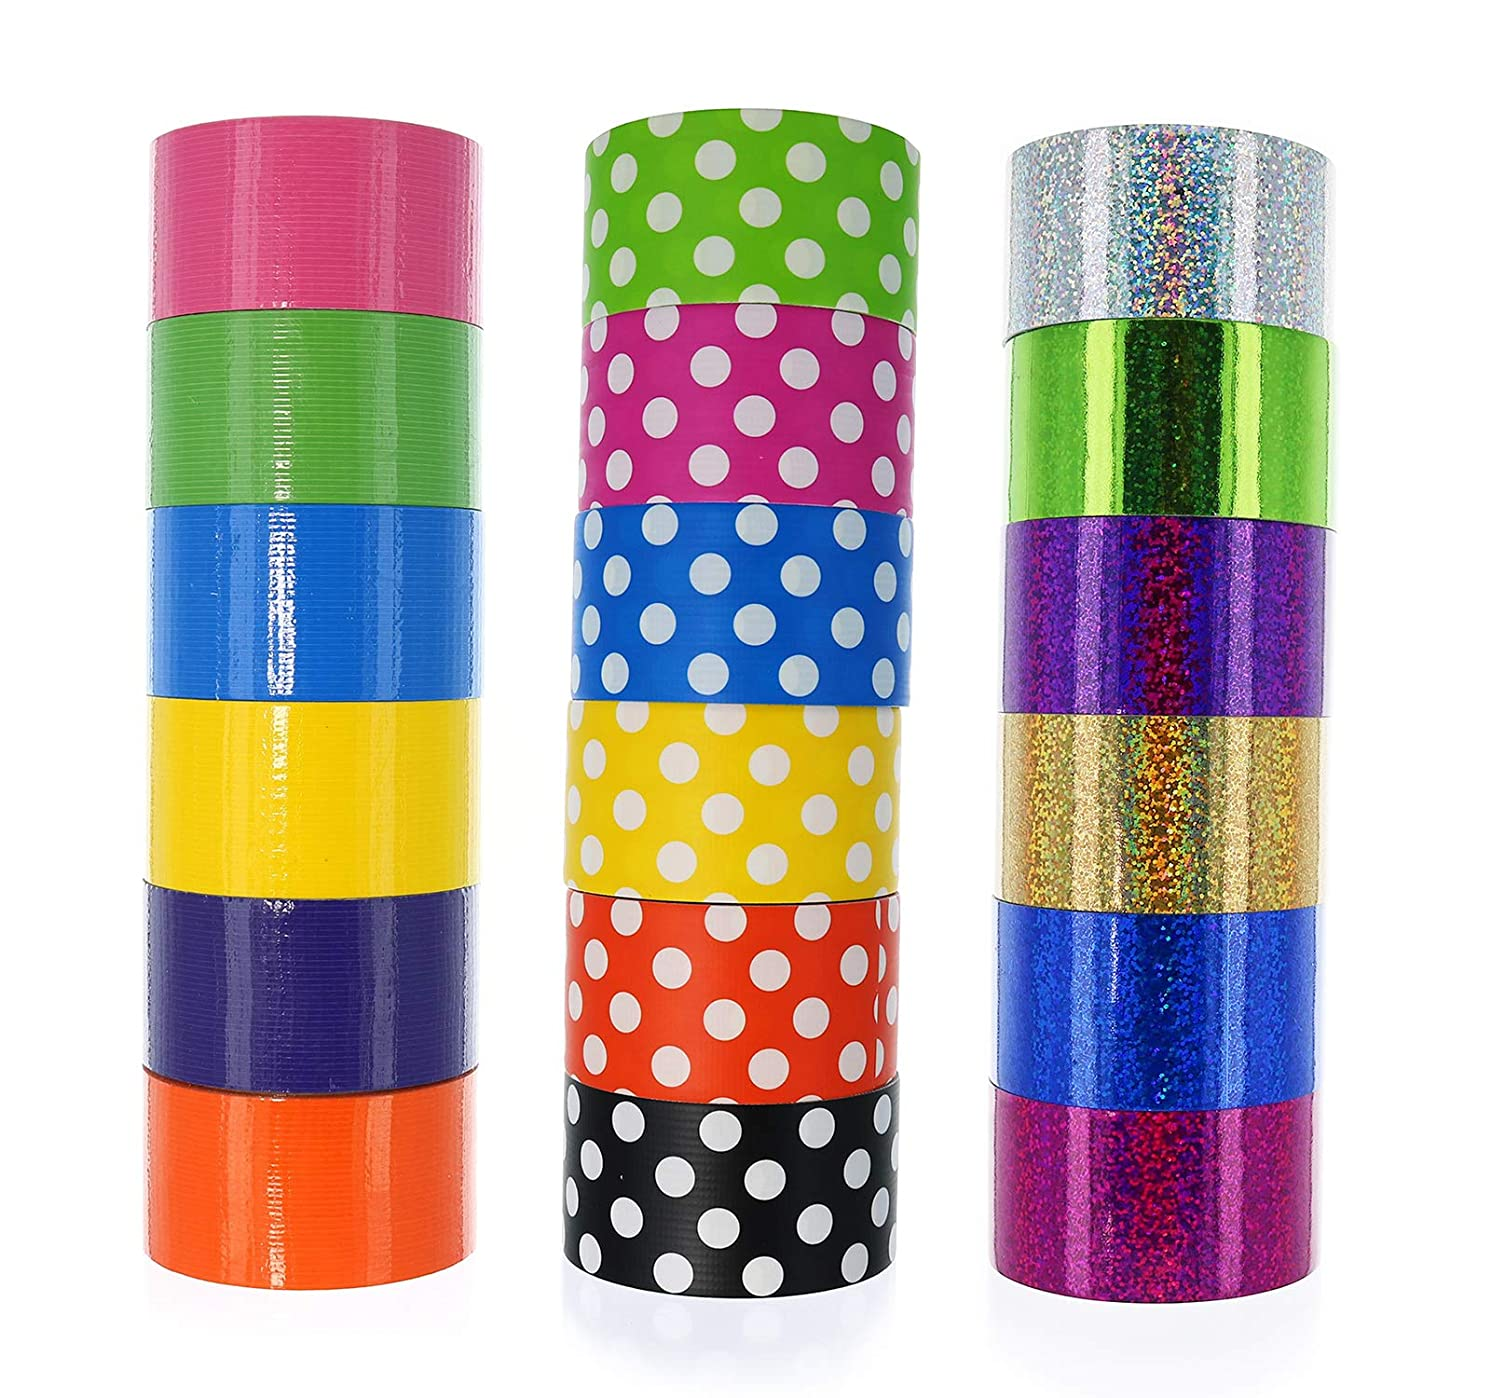 GIFTEXPRESS 18 Assorted Colored Duct Tapes, Holographic Polka Dot Duct Tapes - Multi Purposes Bright Colors Tapes Great for DIY Art Home School Office Colors: Pink Purple red Orange Gold ect. 2